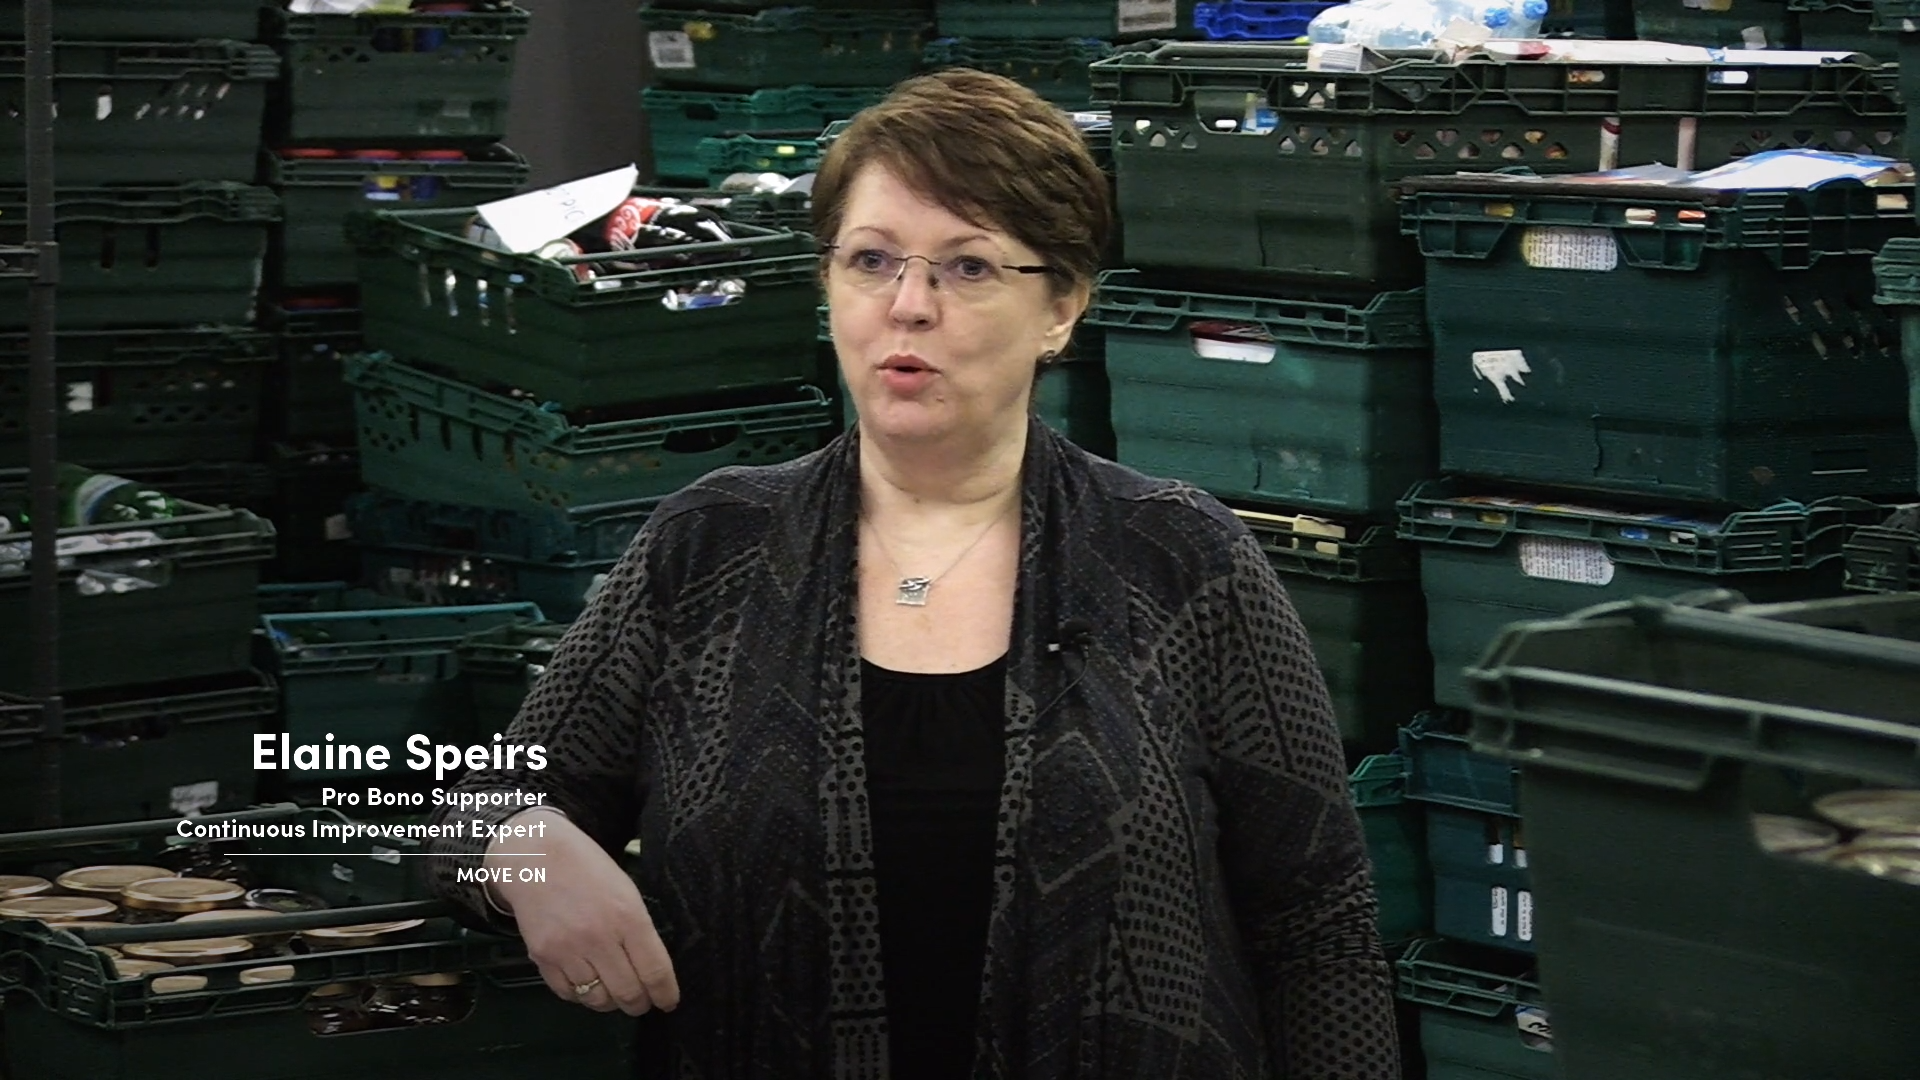 Inspiring Scotland Pro Bono Supporter Elaine Speirs helps FairShare Glasgow